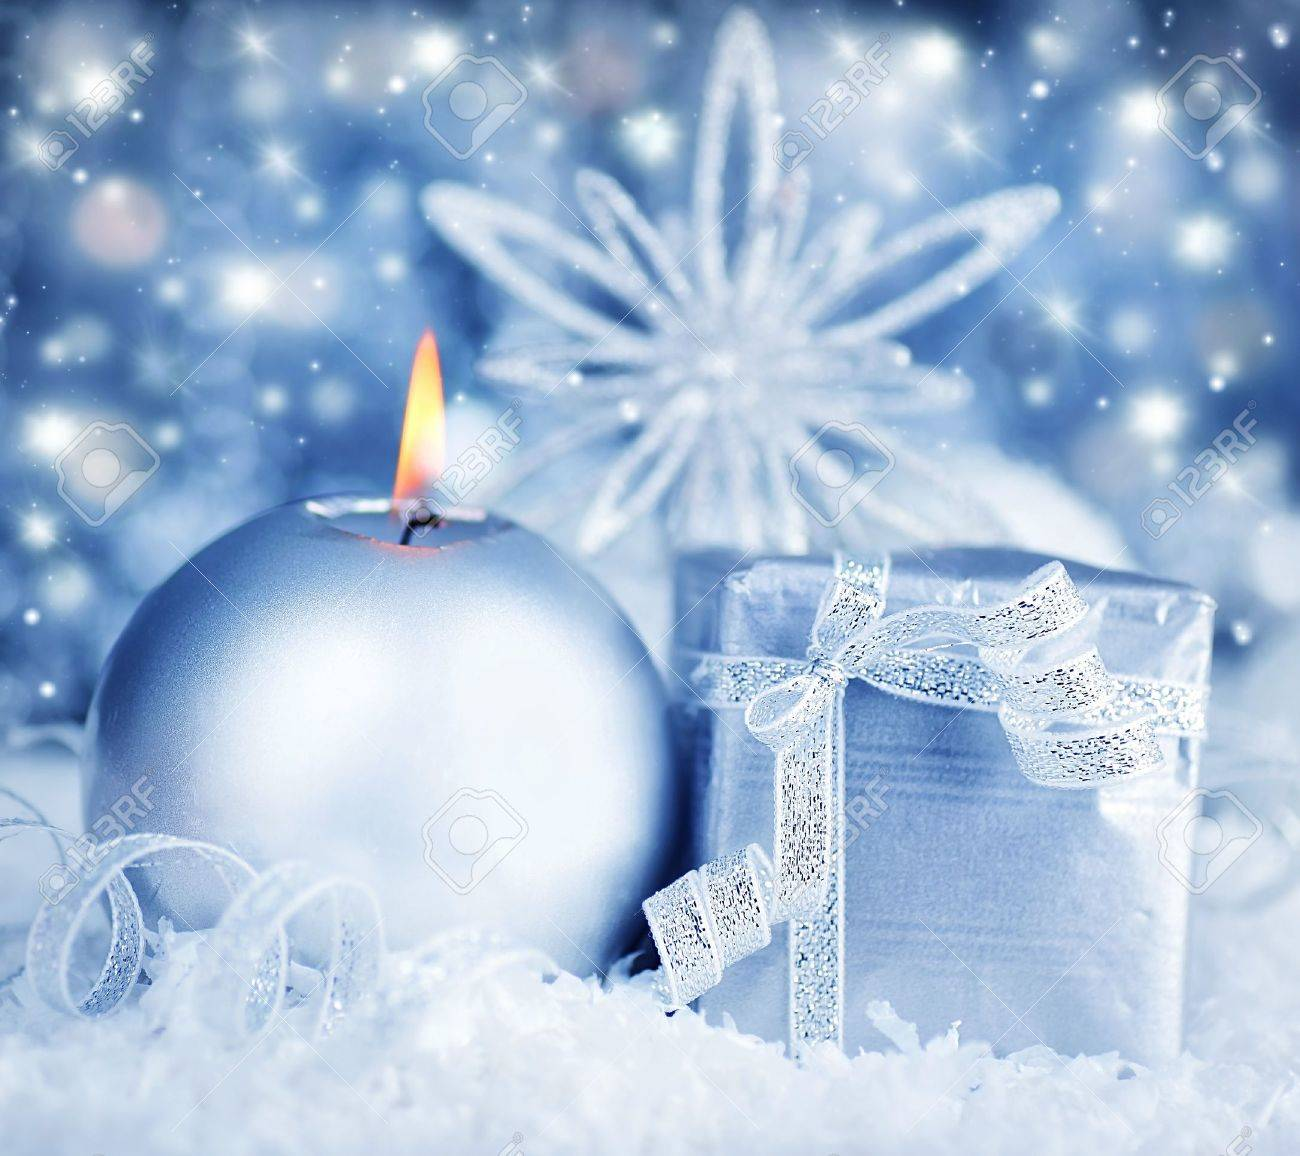 Winter holiday background with silver present gift box, candle ornament & Christmas snow decoration Stock Photo - 8267460